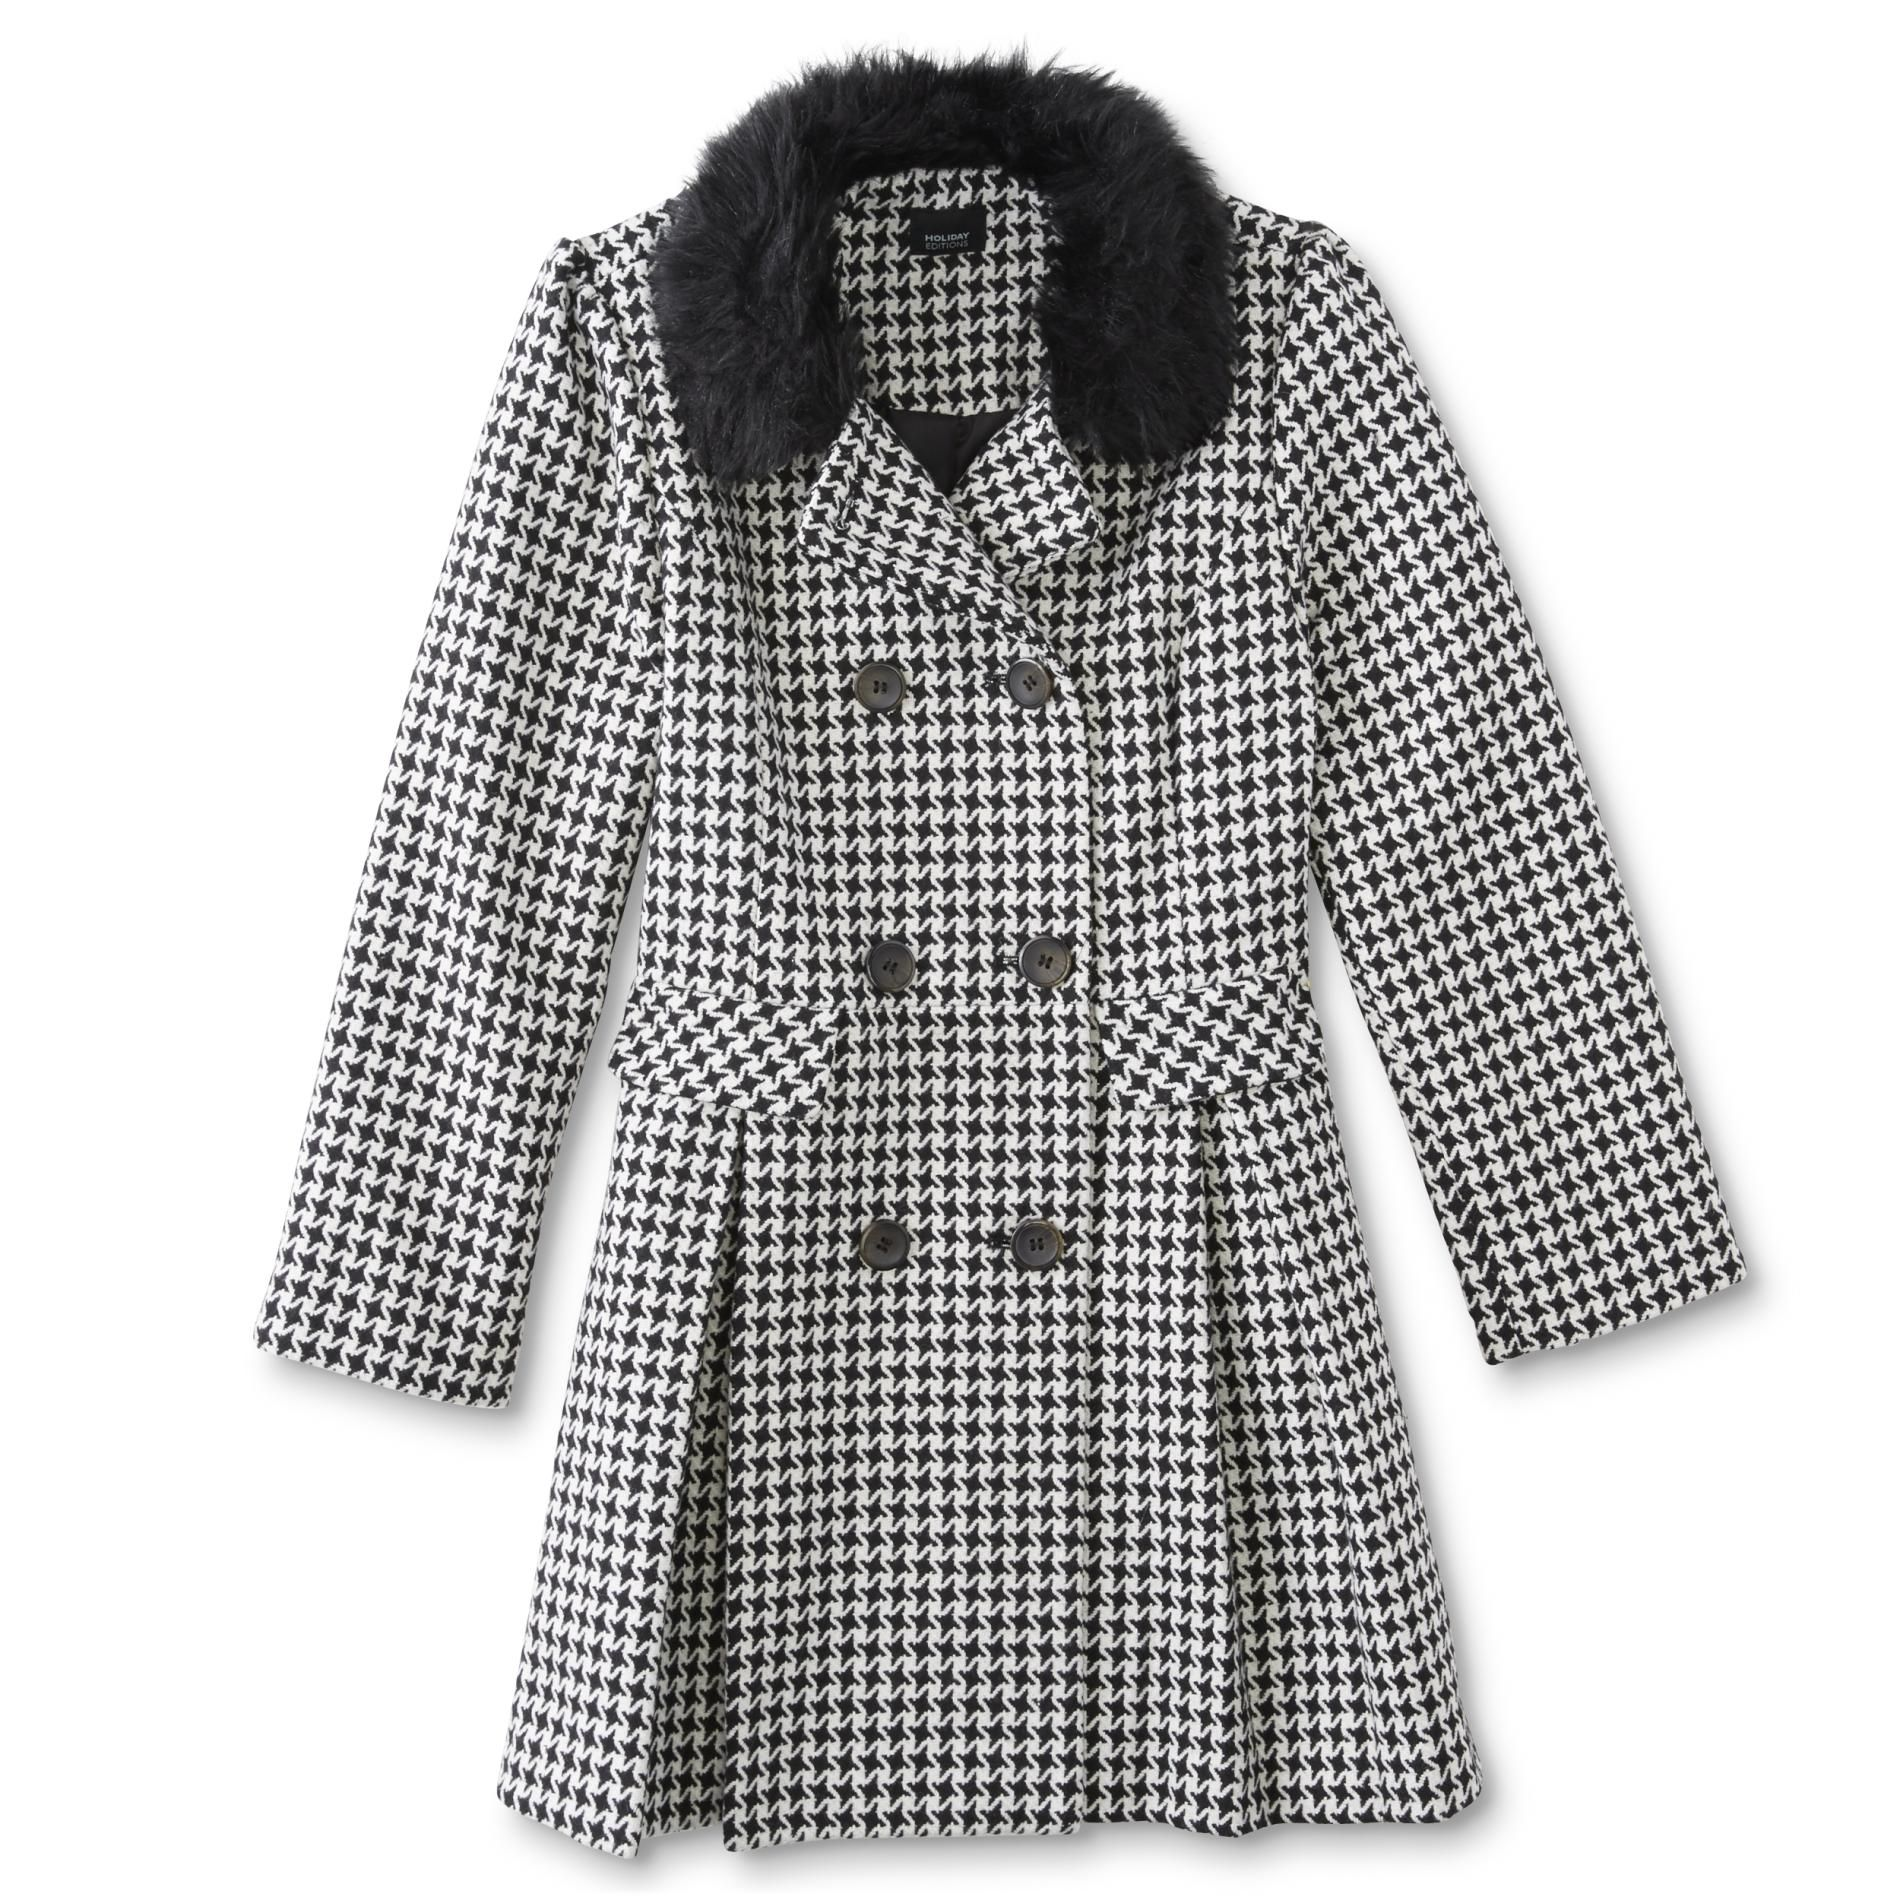 Holiday Editions Girls' Riding Coat - Houndstooth